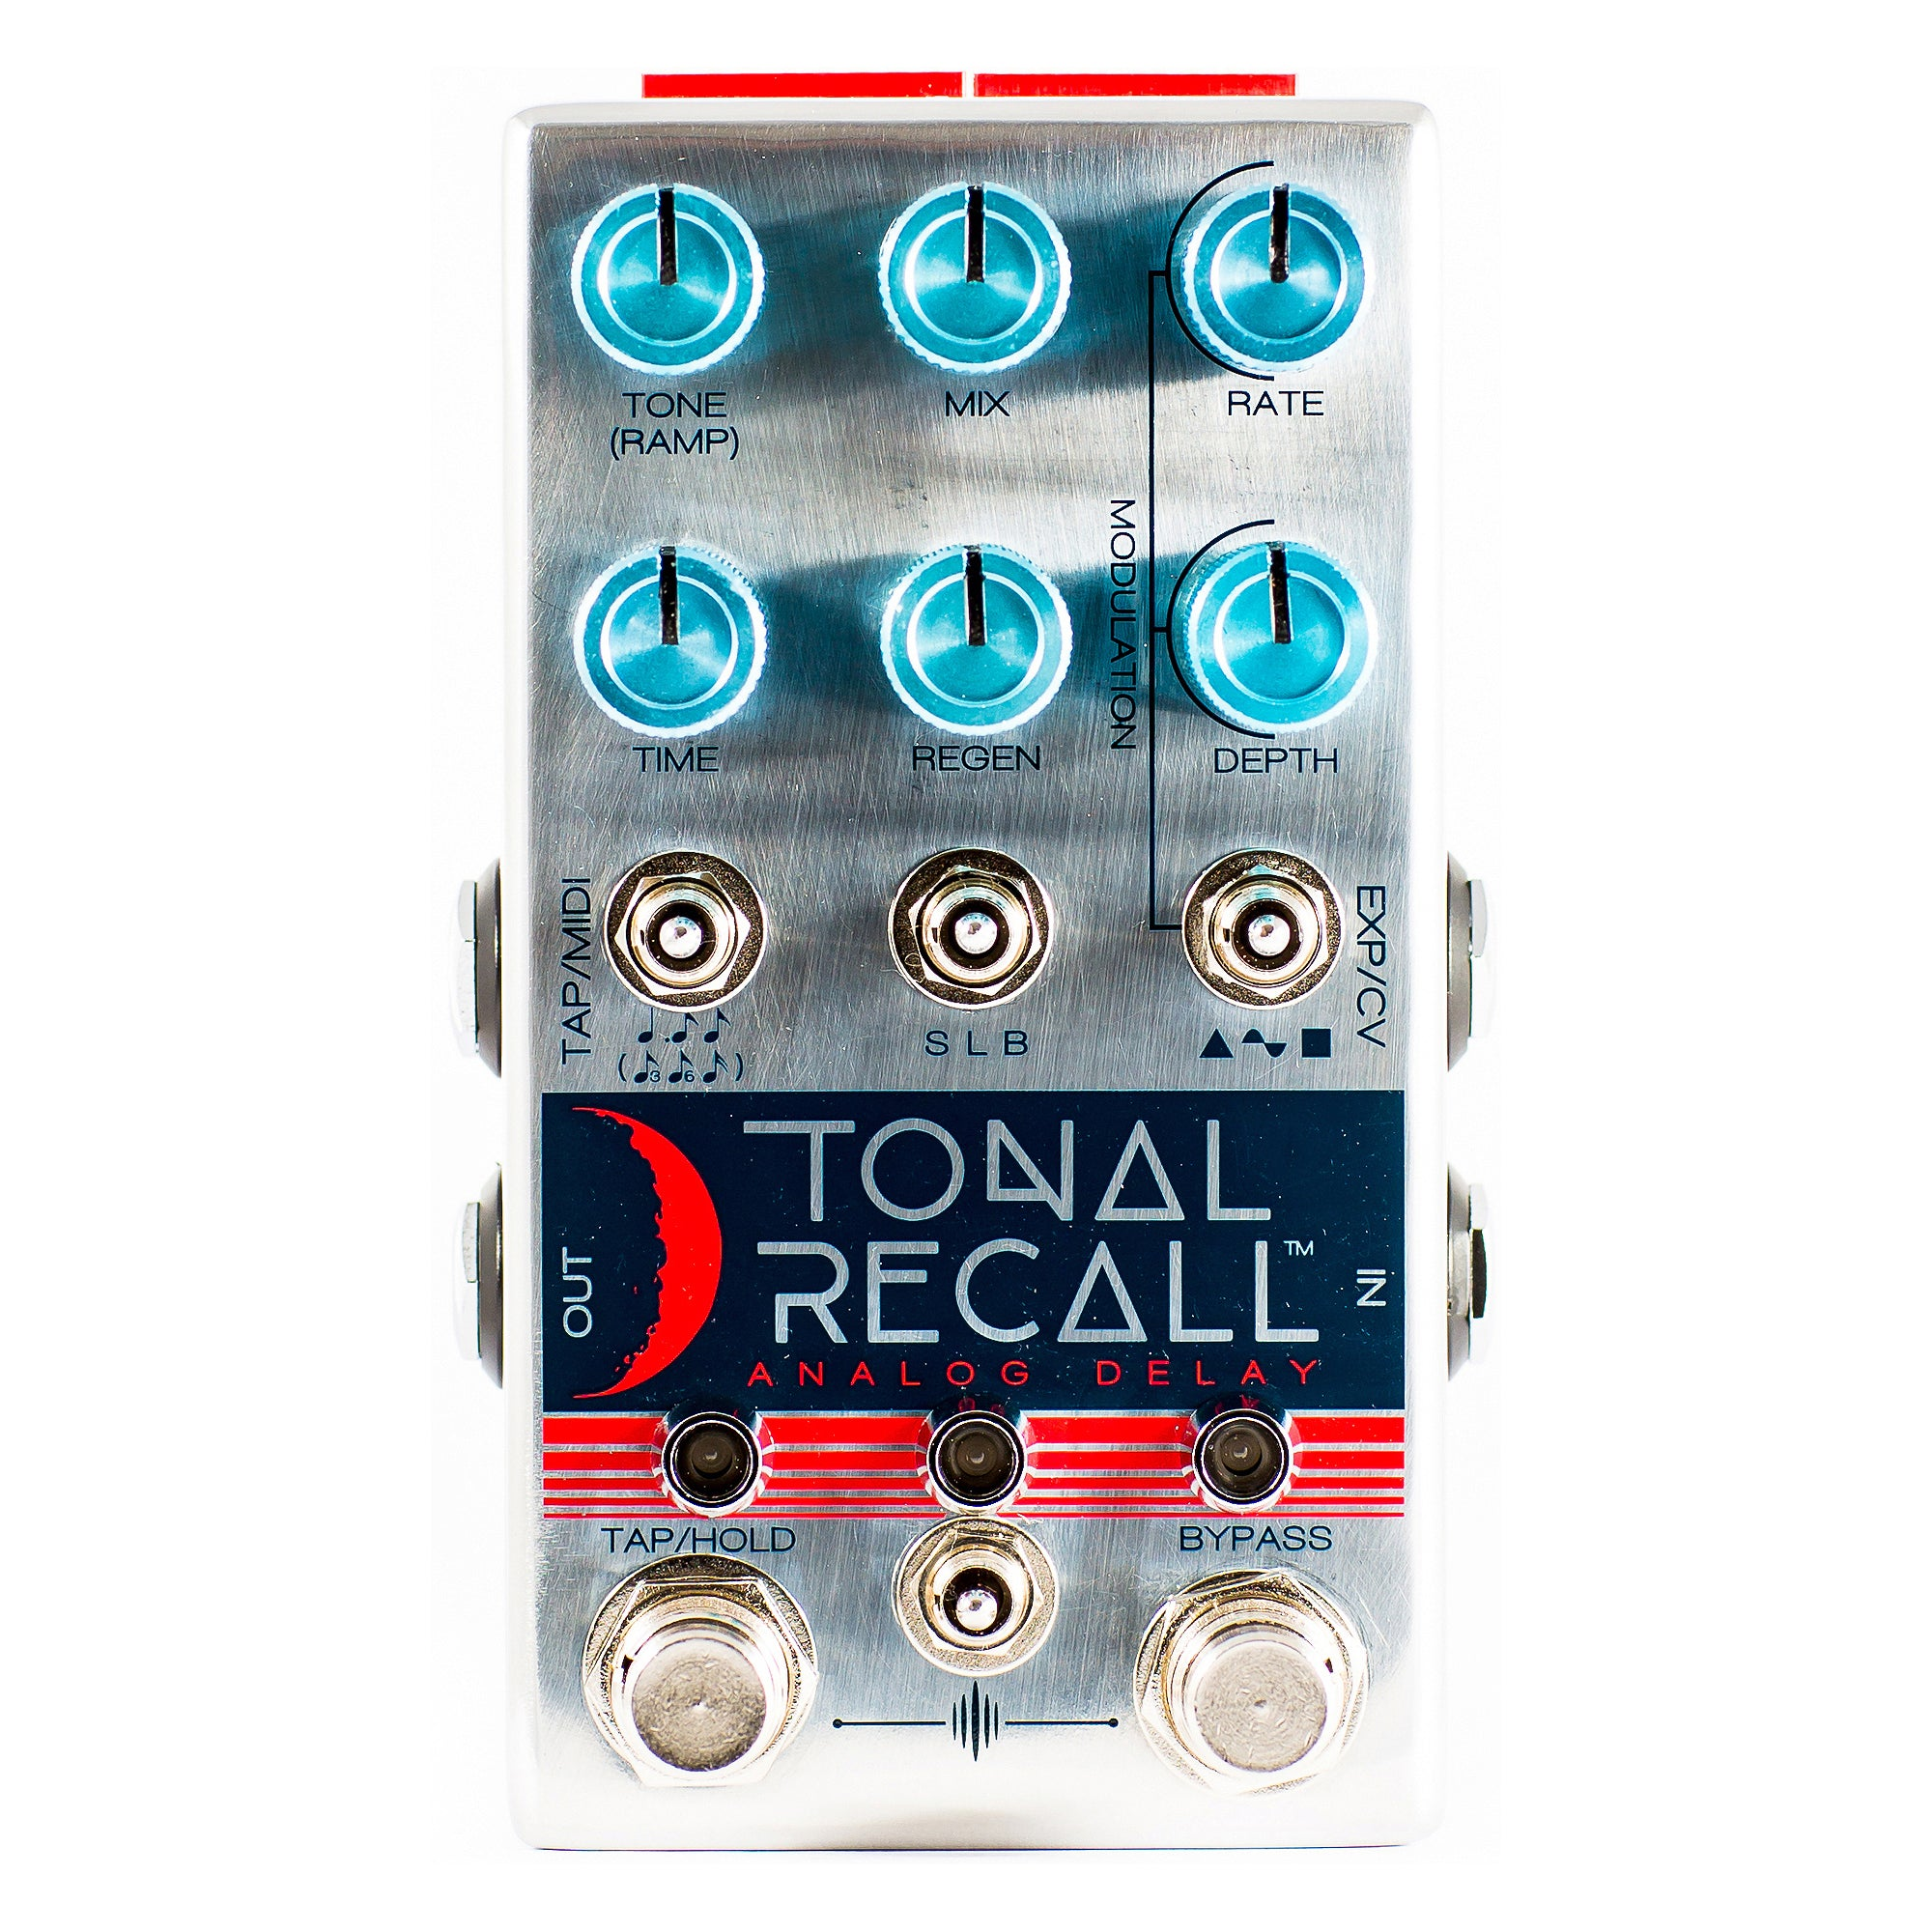 Chase Bliss Audio - Tonal Recall Analog Delay